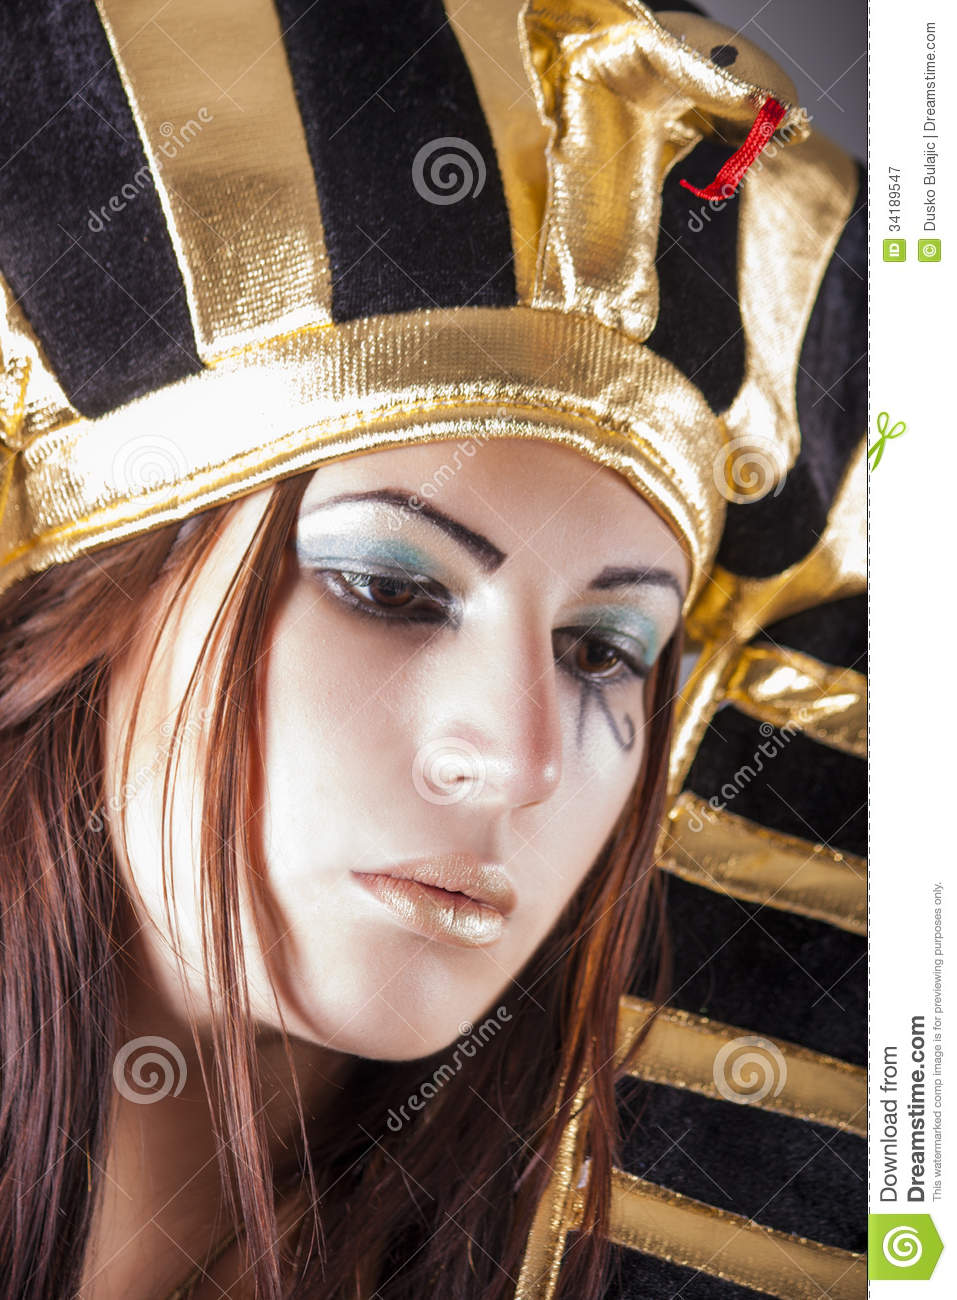 Cleopatra Queen Of Egypt Royalty Free Stock Photography